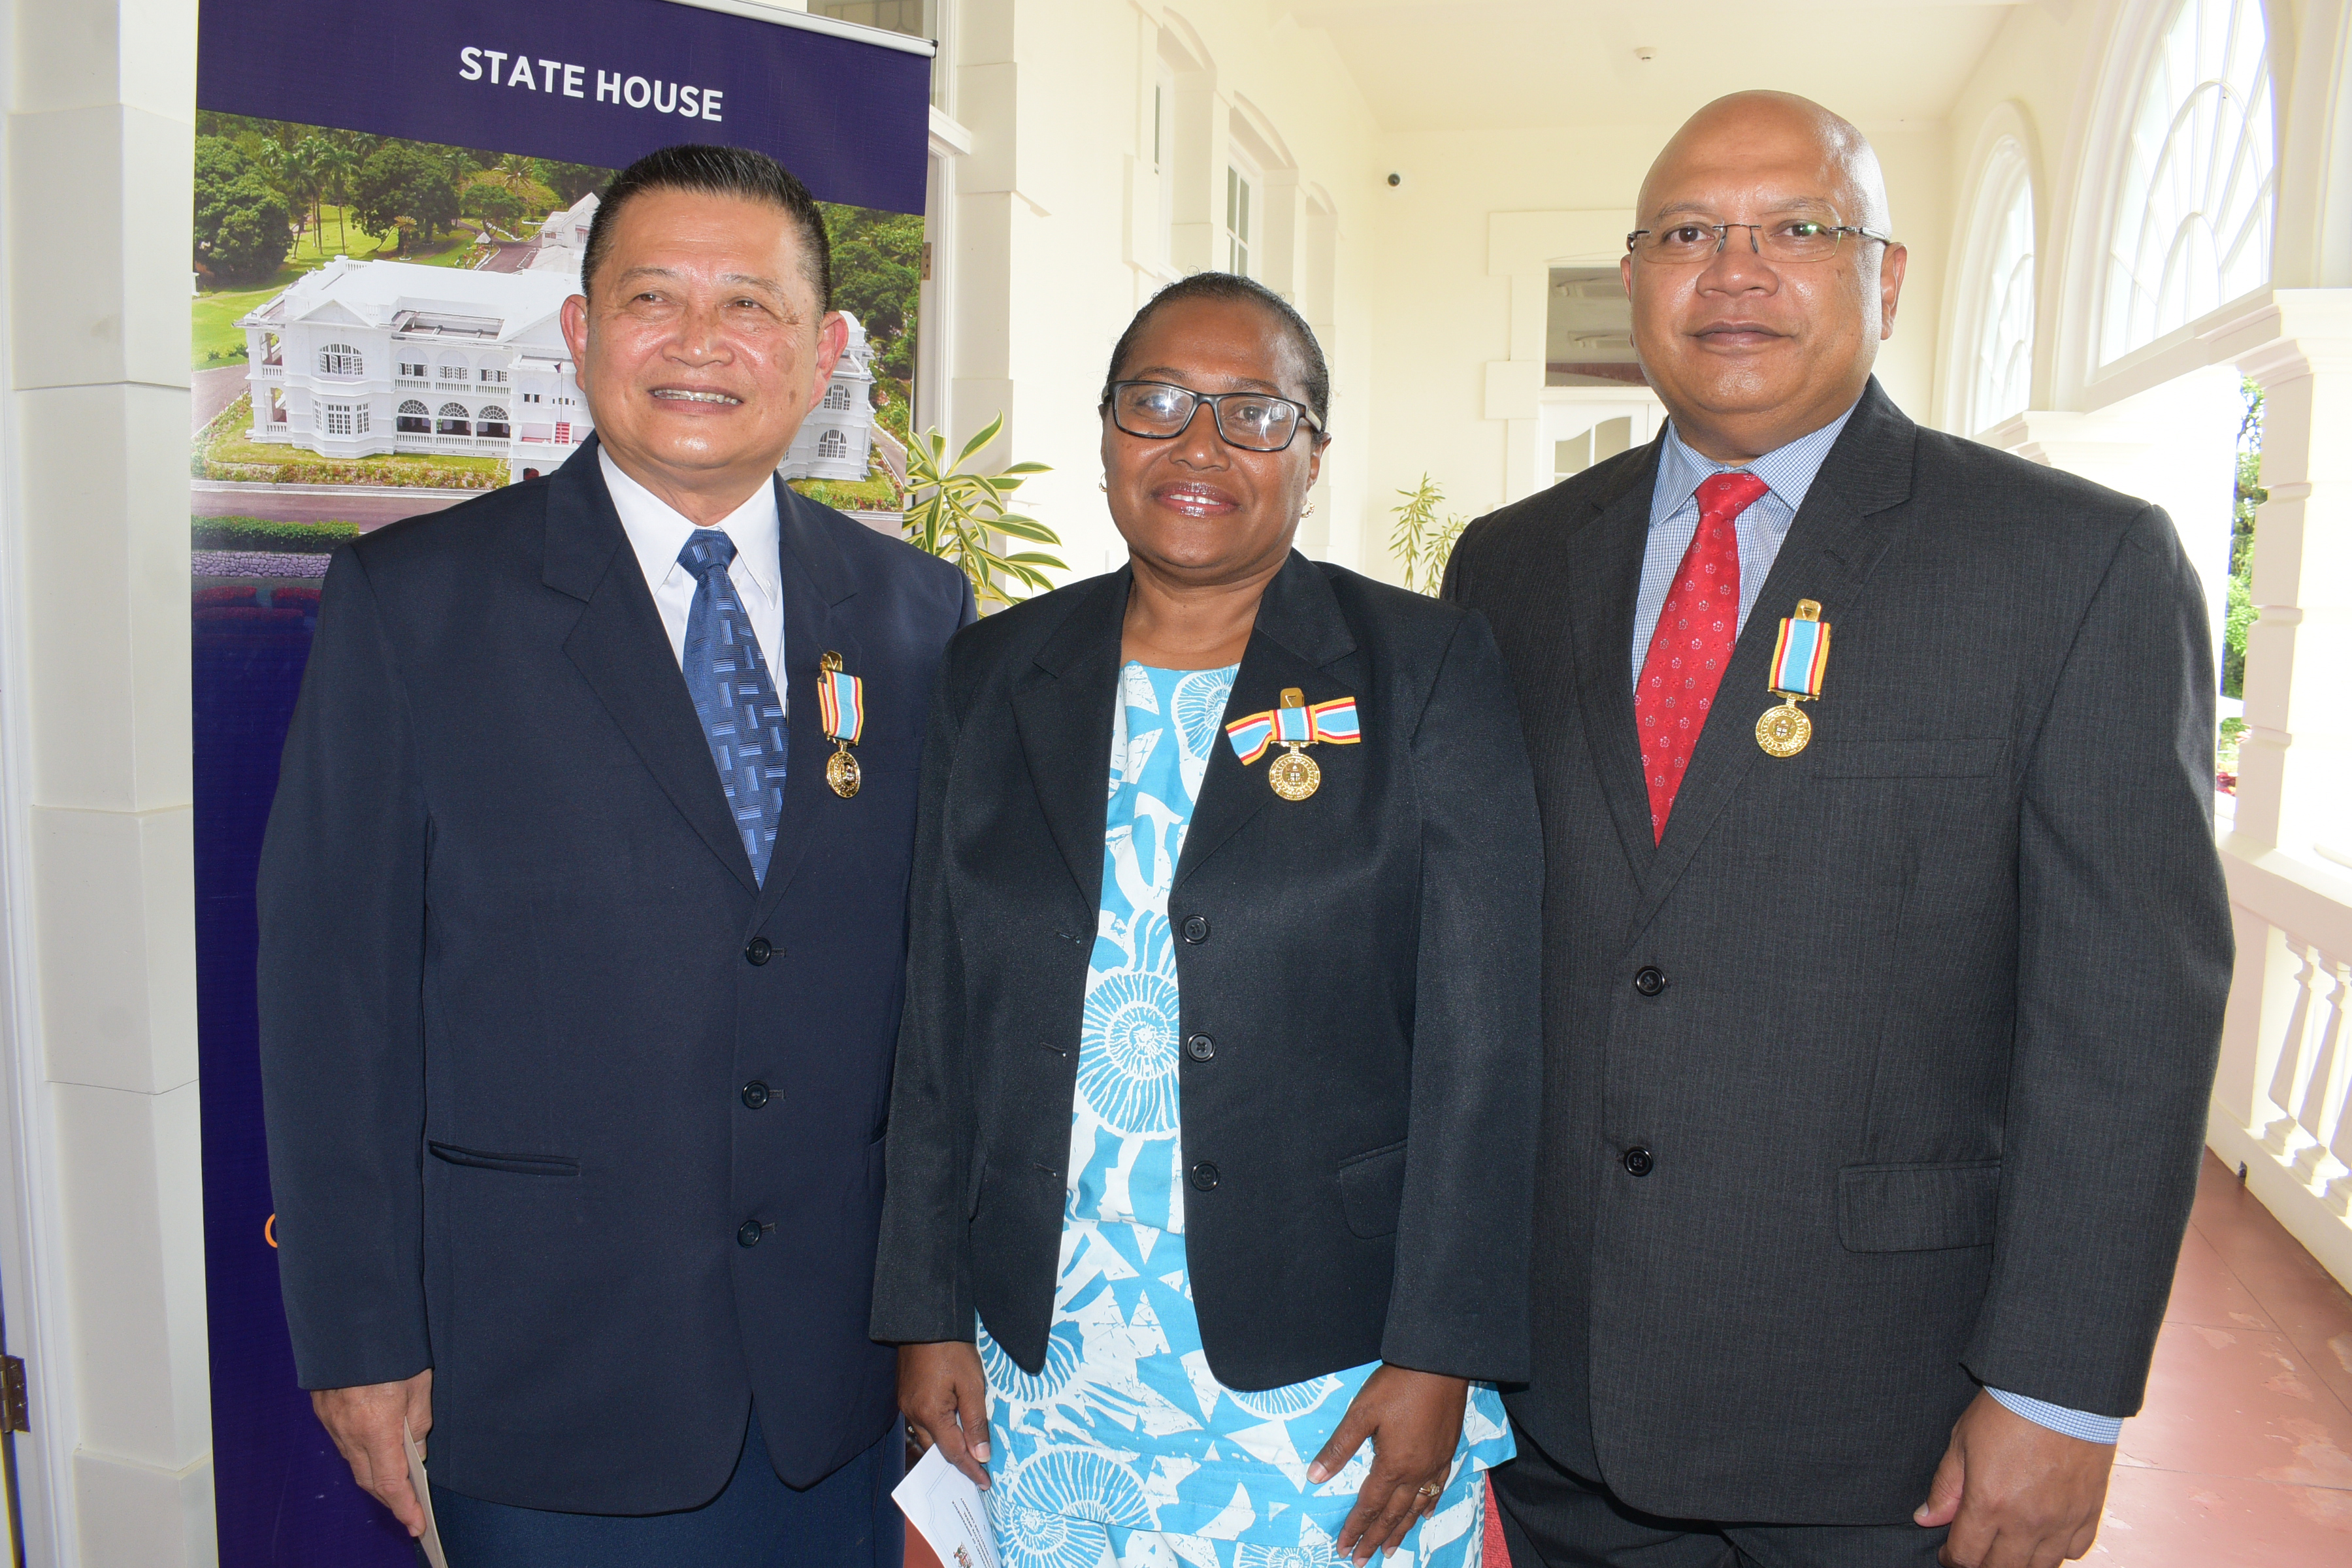 From left-Christopher Yee, Della Shaw-Elder and Sekeli Tuinamuana after receiving 50th anniversary of Independence commemorative medal during special investiture ceremony at State House on October 8, 2020. Photo: Ronald Kumar.